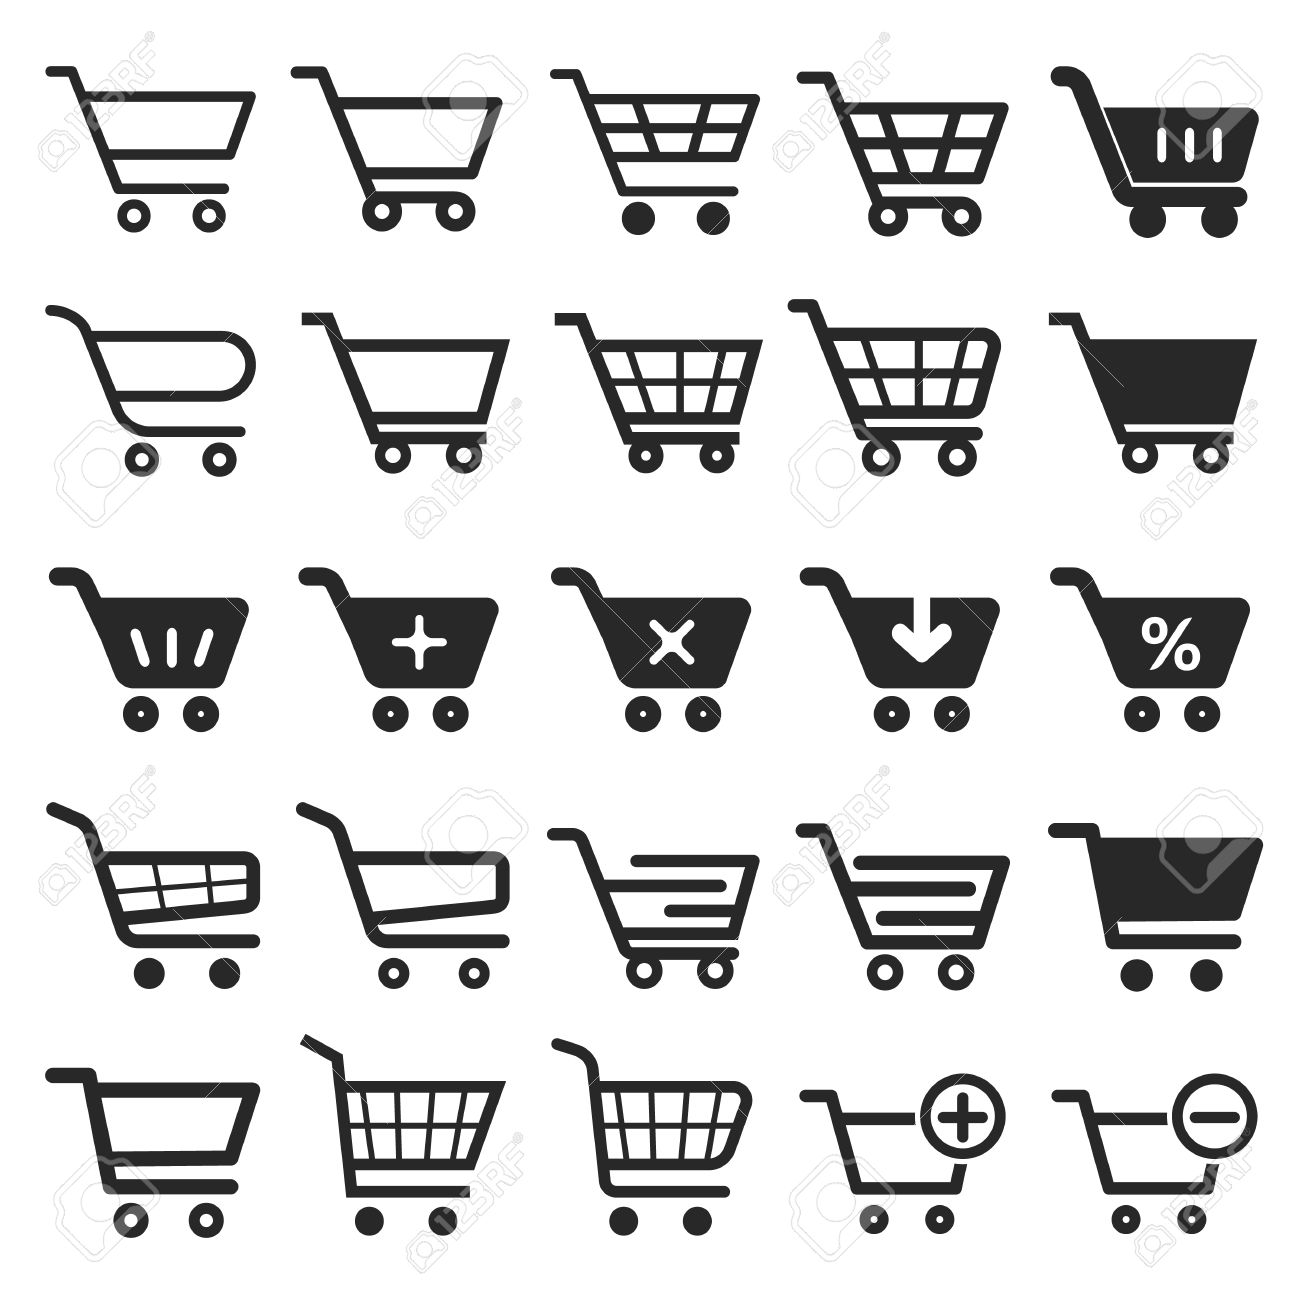 Shopping Cart icon set, shopping cart icon, shopping cart, business icon, web icons, trolley icon, shopping icon, cart icon, shop icon, shopping cart button - 59894892